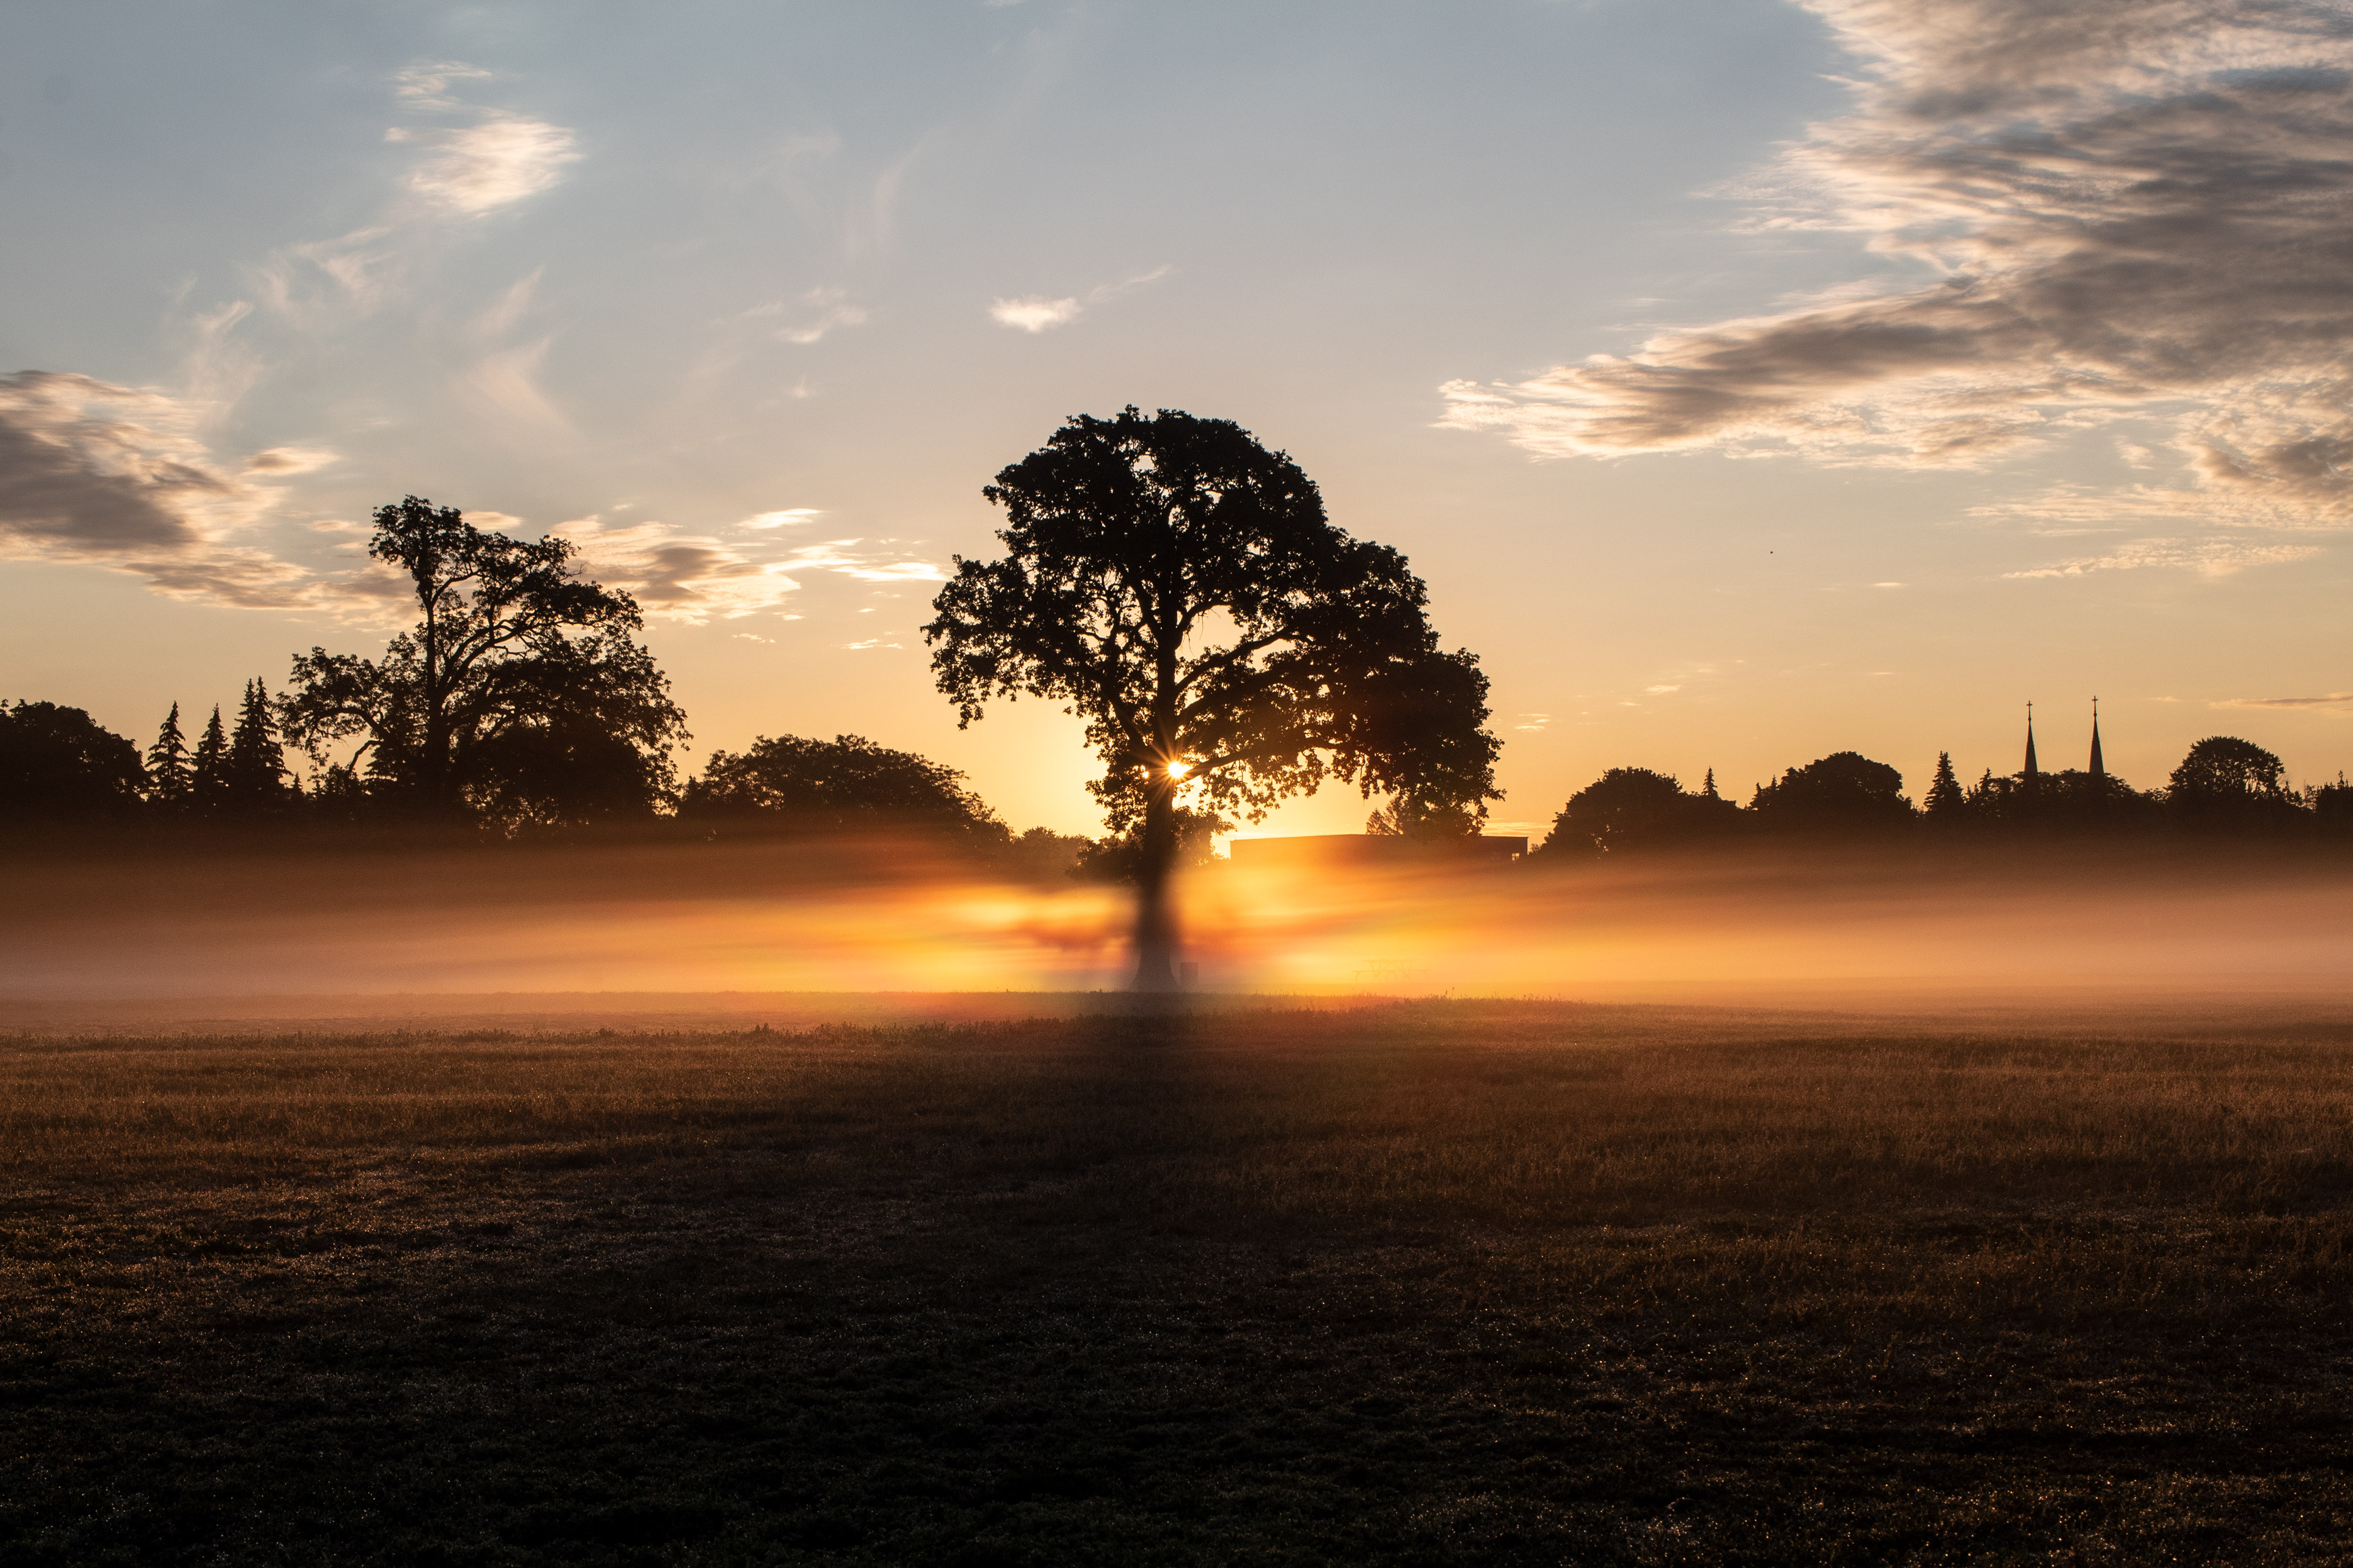 Tree on a field surrounded by fog. The sun is rising behind the tree, turning the fog various hues of orange, yellow, and red